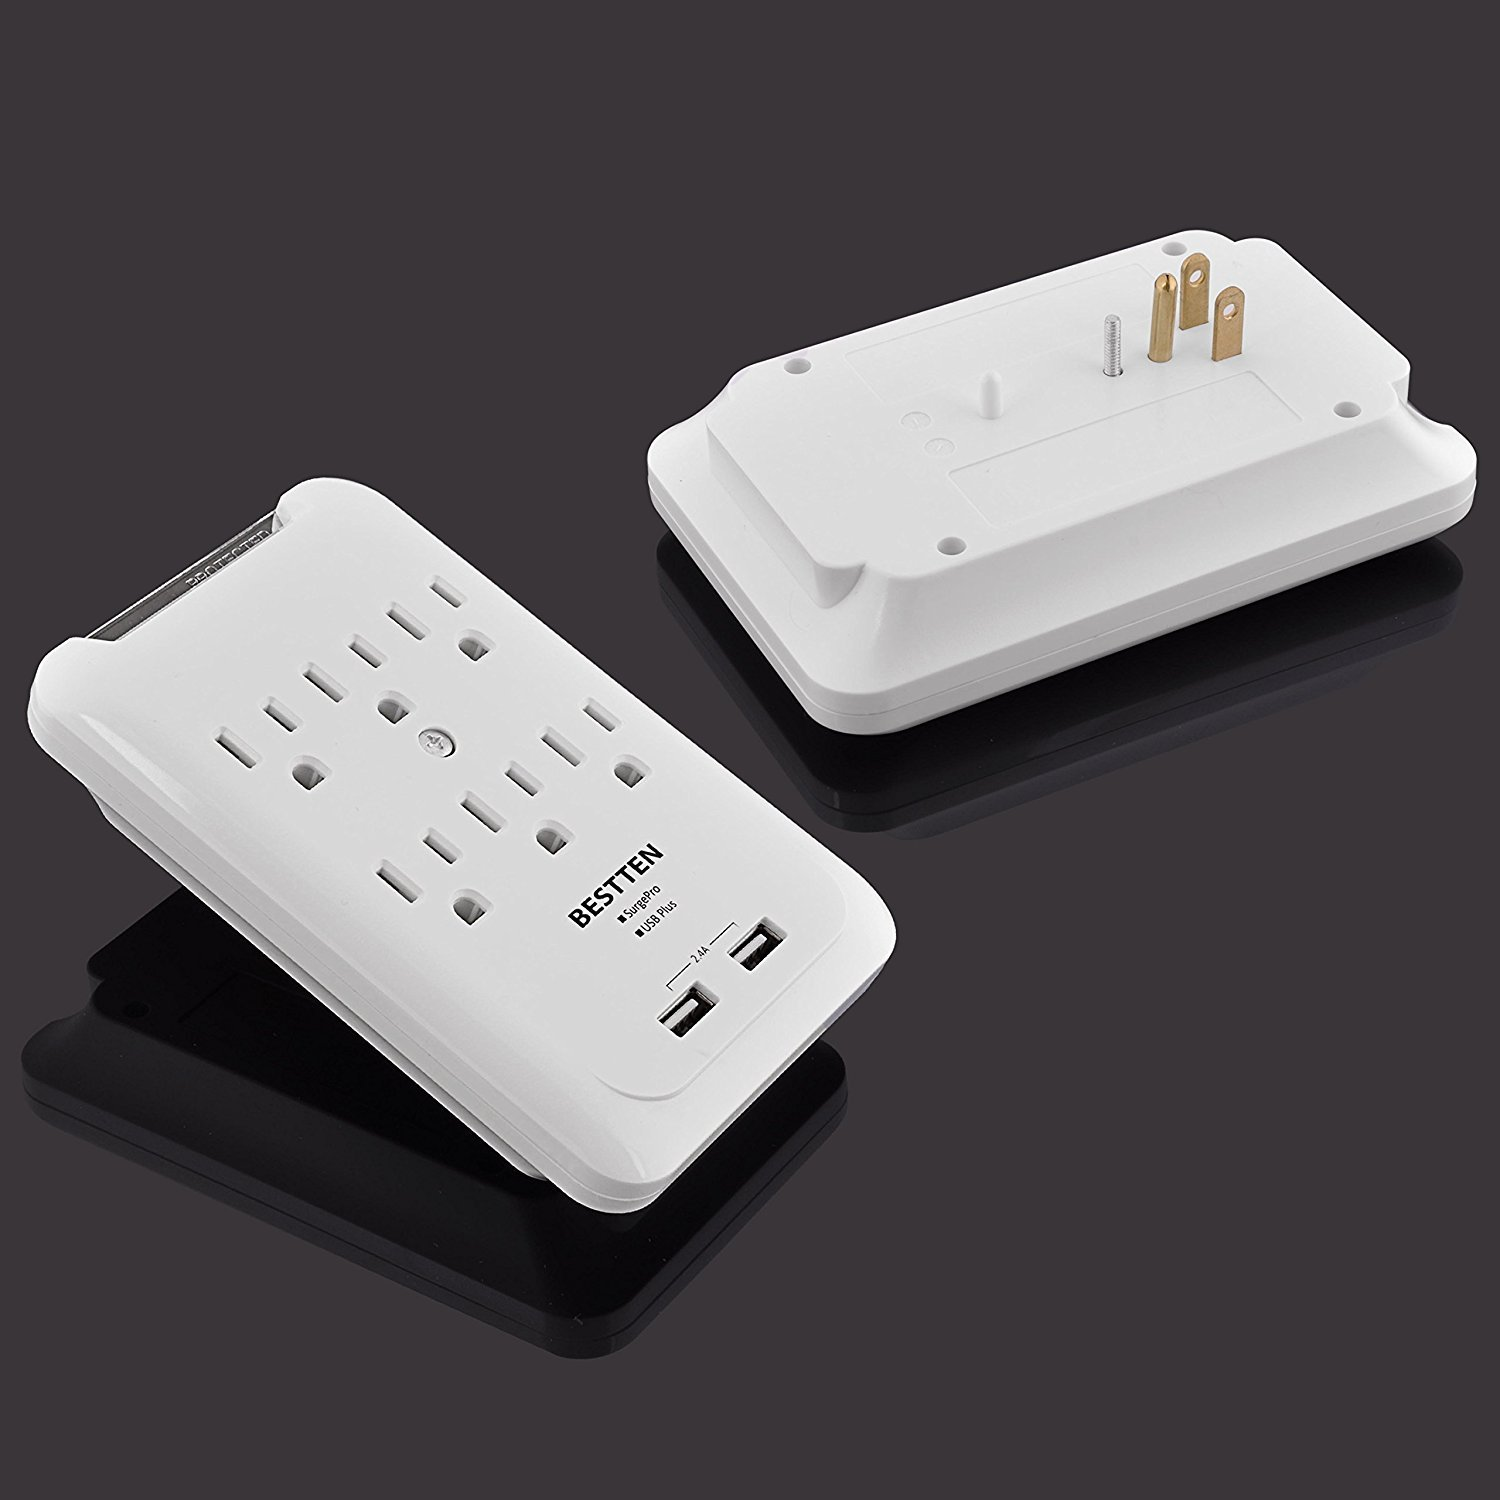 Bestten 6-Outlet Surge Protector Wall Mount Adapter with 2 USB Charging Ports